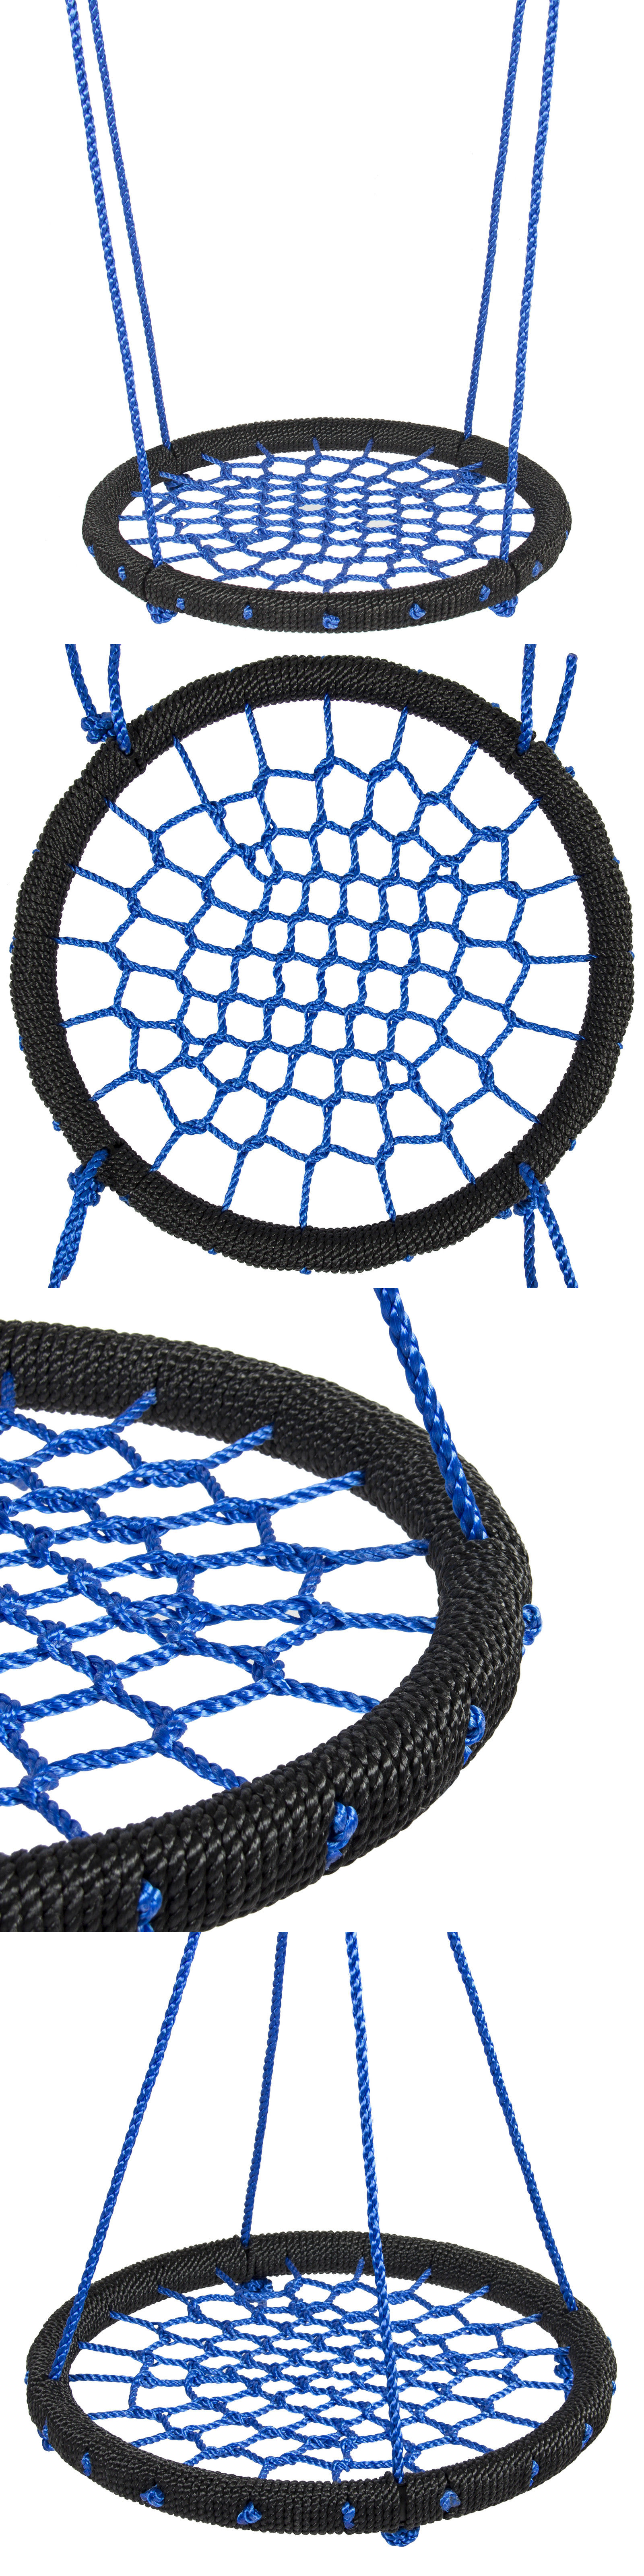 swings slides and gyms 16515 spider web riderz nest swing game